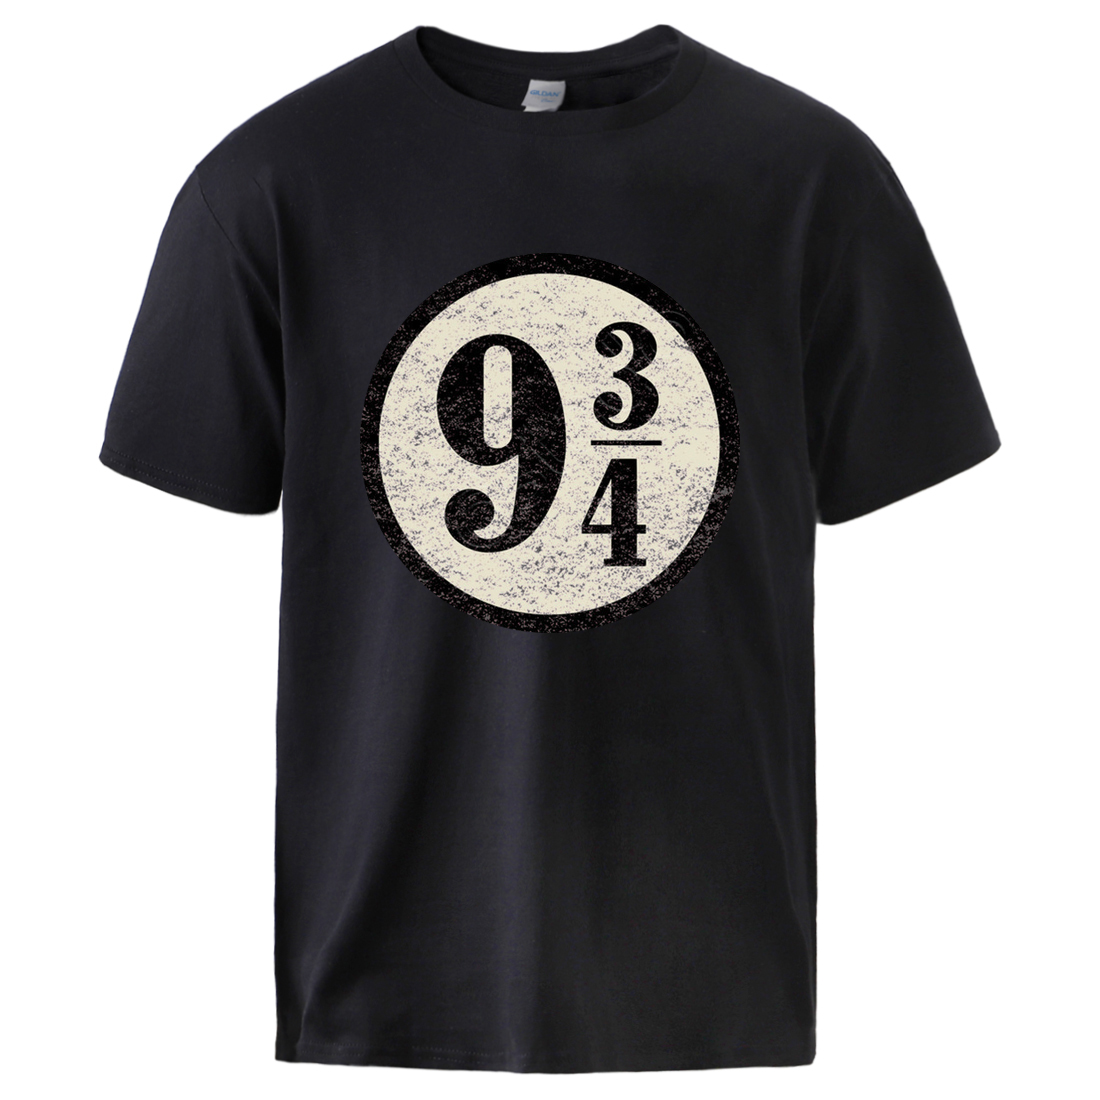 Nine And Three Quarters Tshirt For Man 2020 Summer Platform 9-3/4 Hogwarts 100% Cotton Sportswear Top Tee Male Causal Streetwear